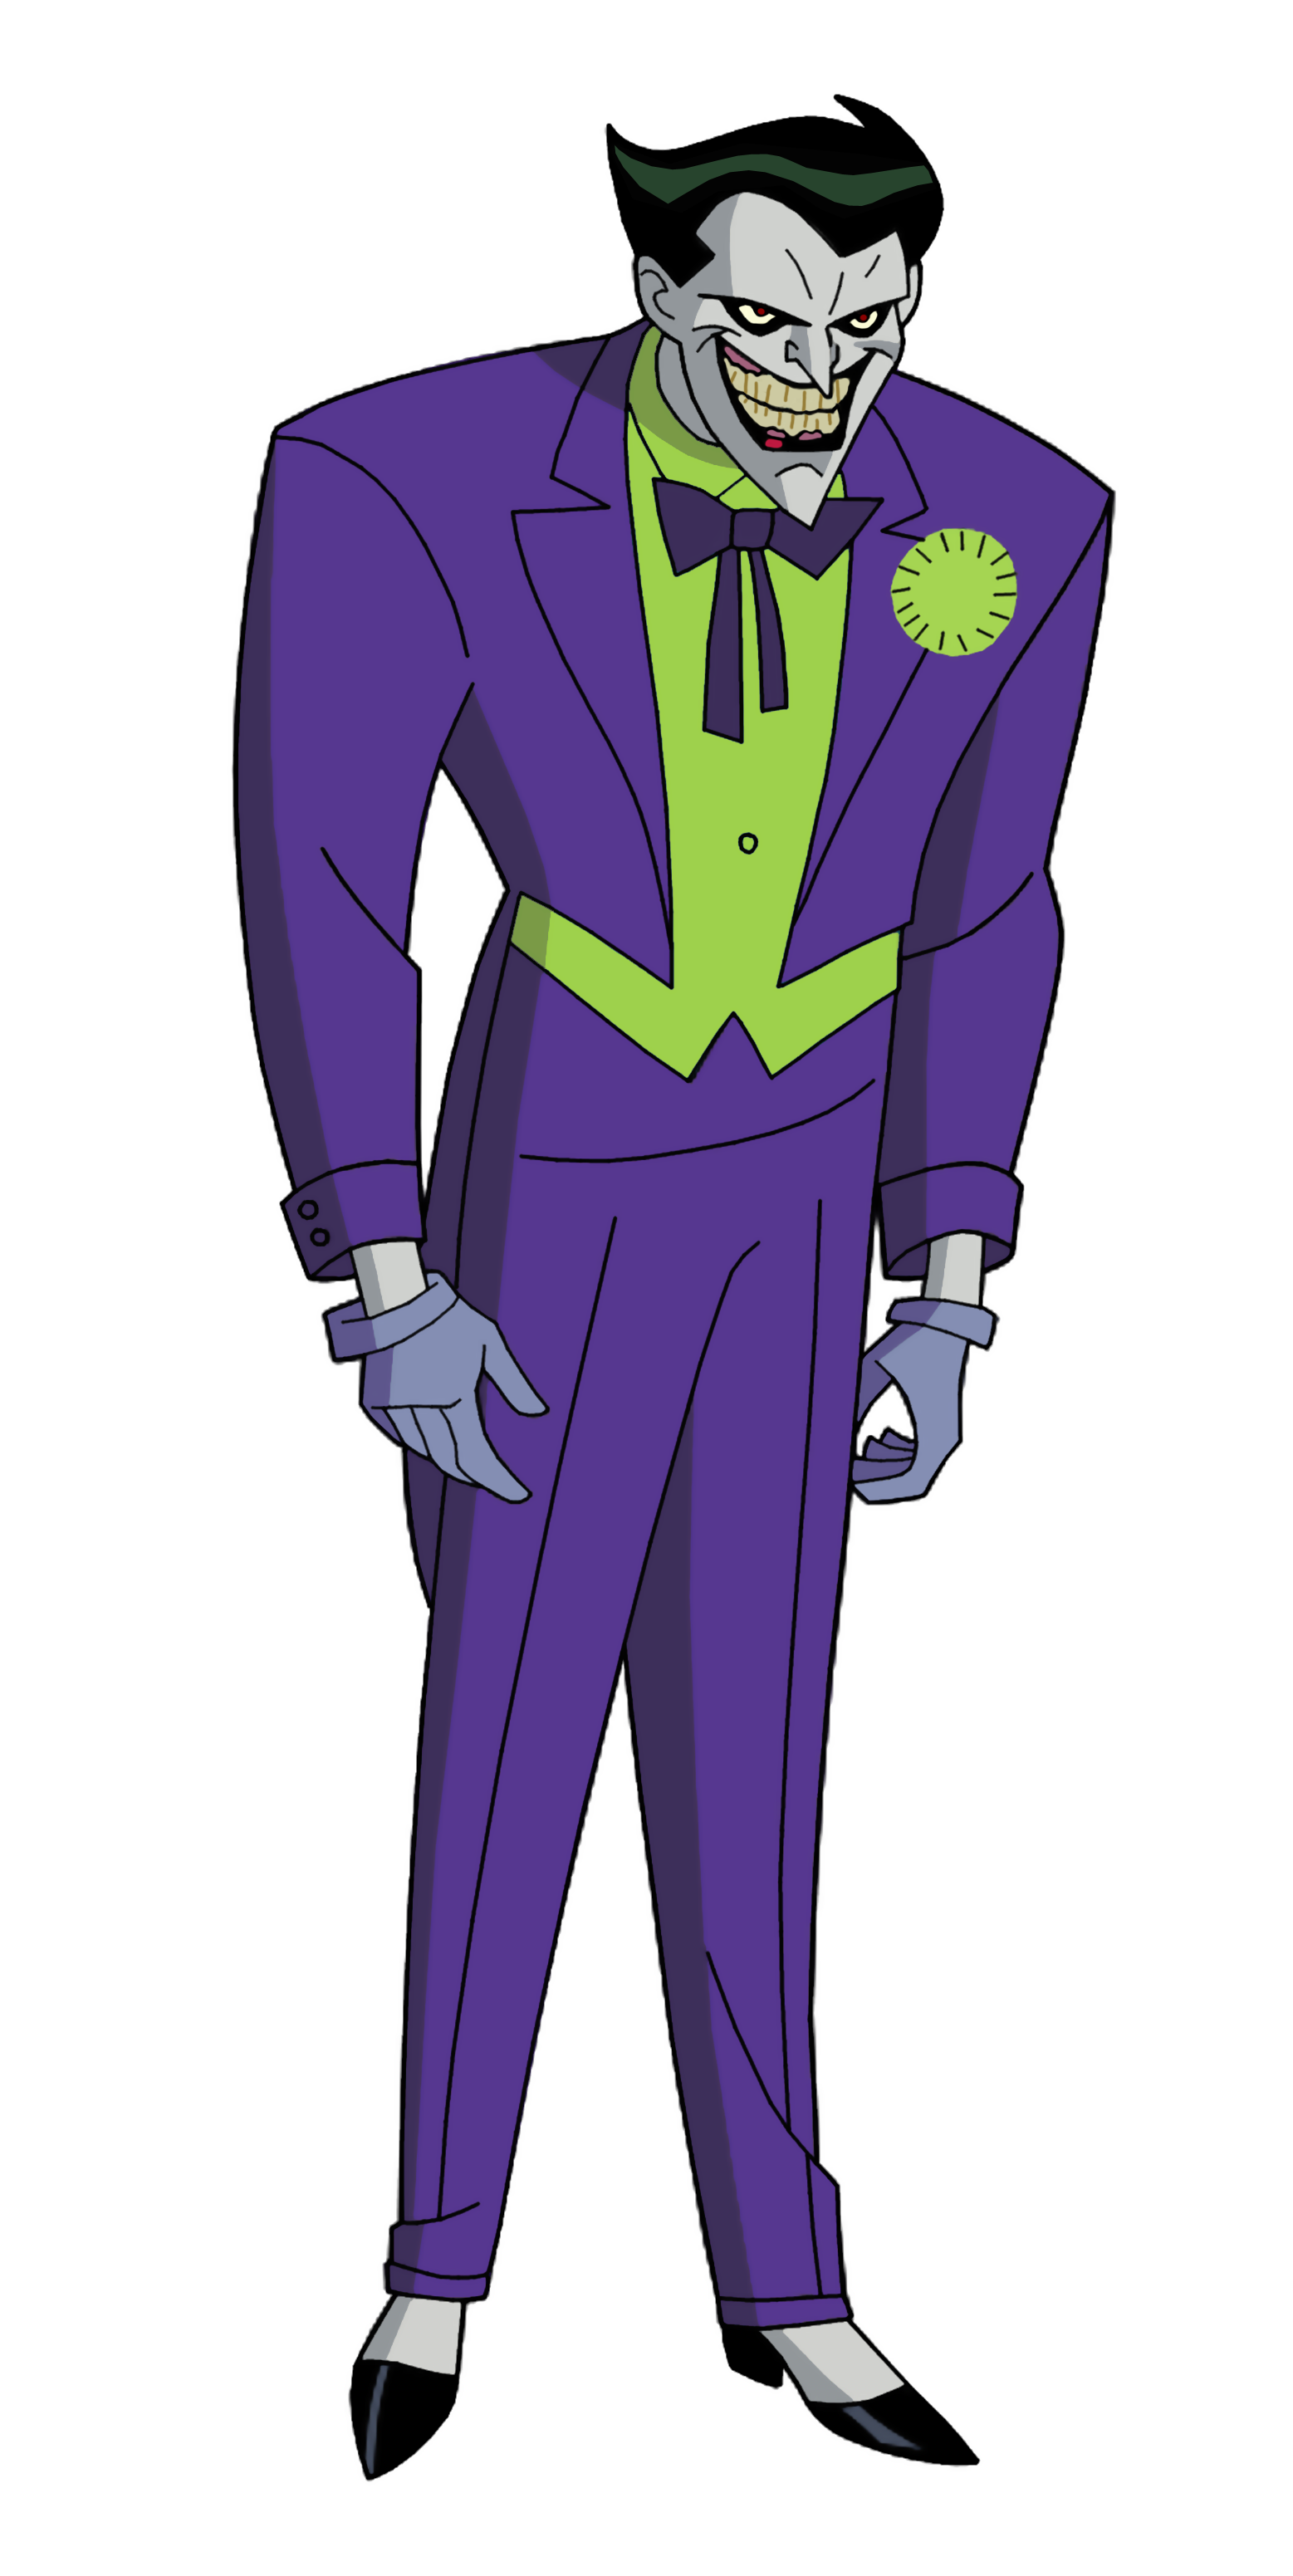 joker animated universe villains wiki fandom #21080